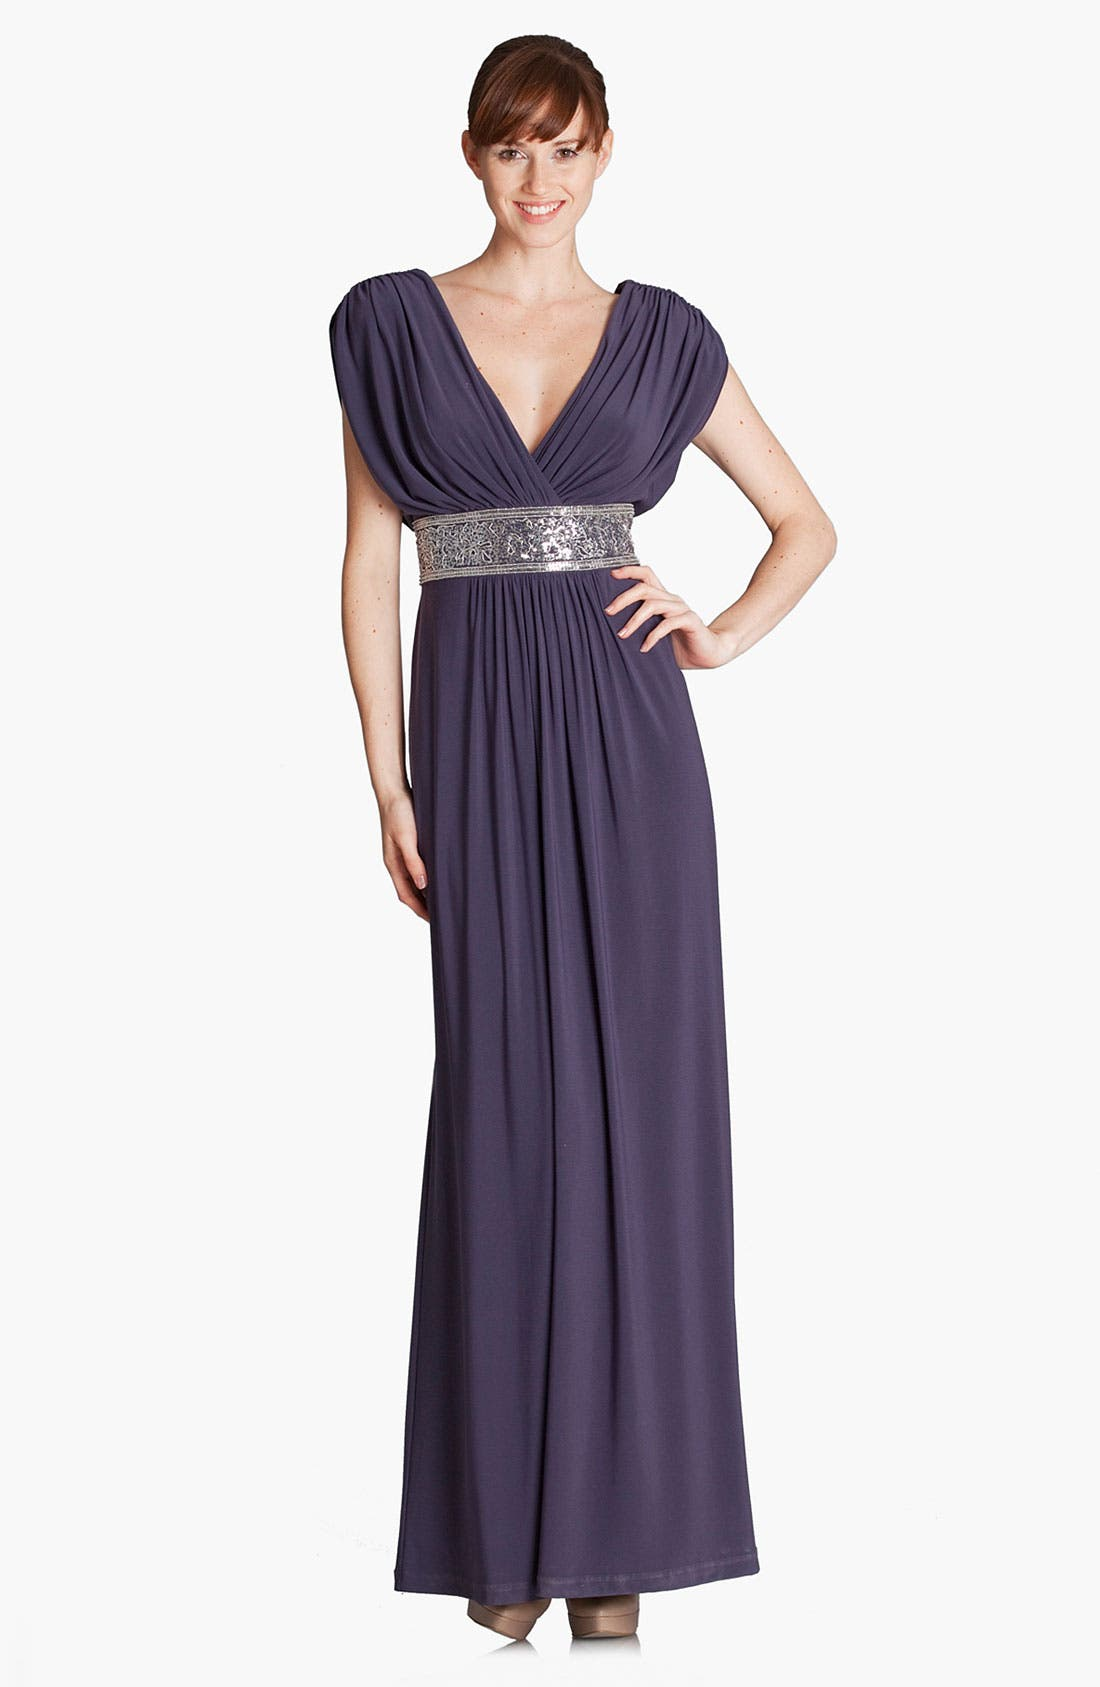 Alternate Image 1 Selected - JS Boutique Metallic Waist Pleated Surplice Gown